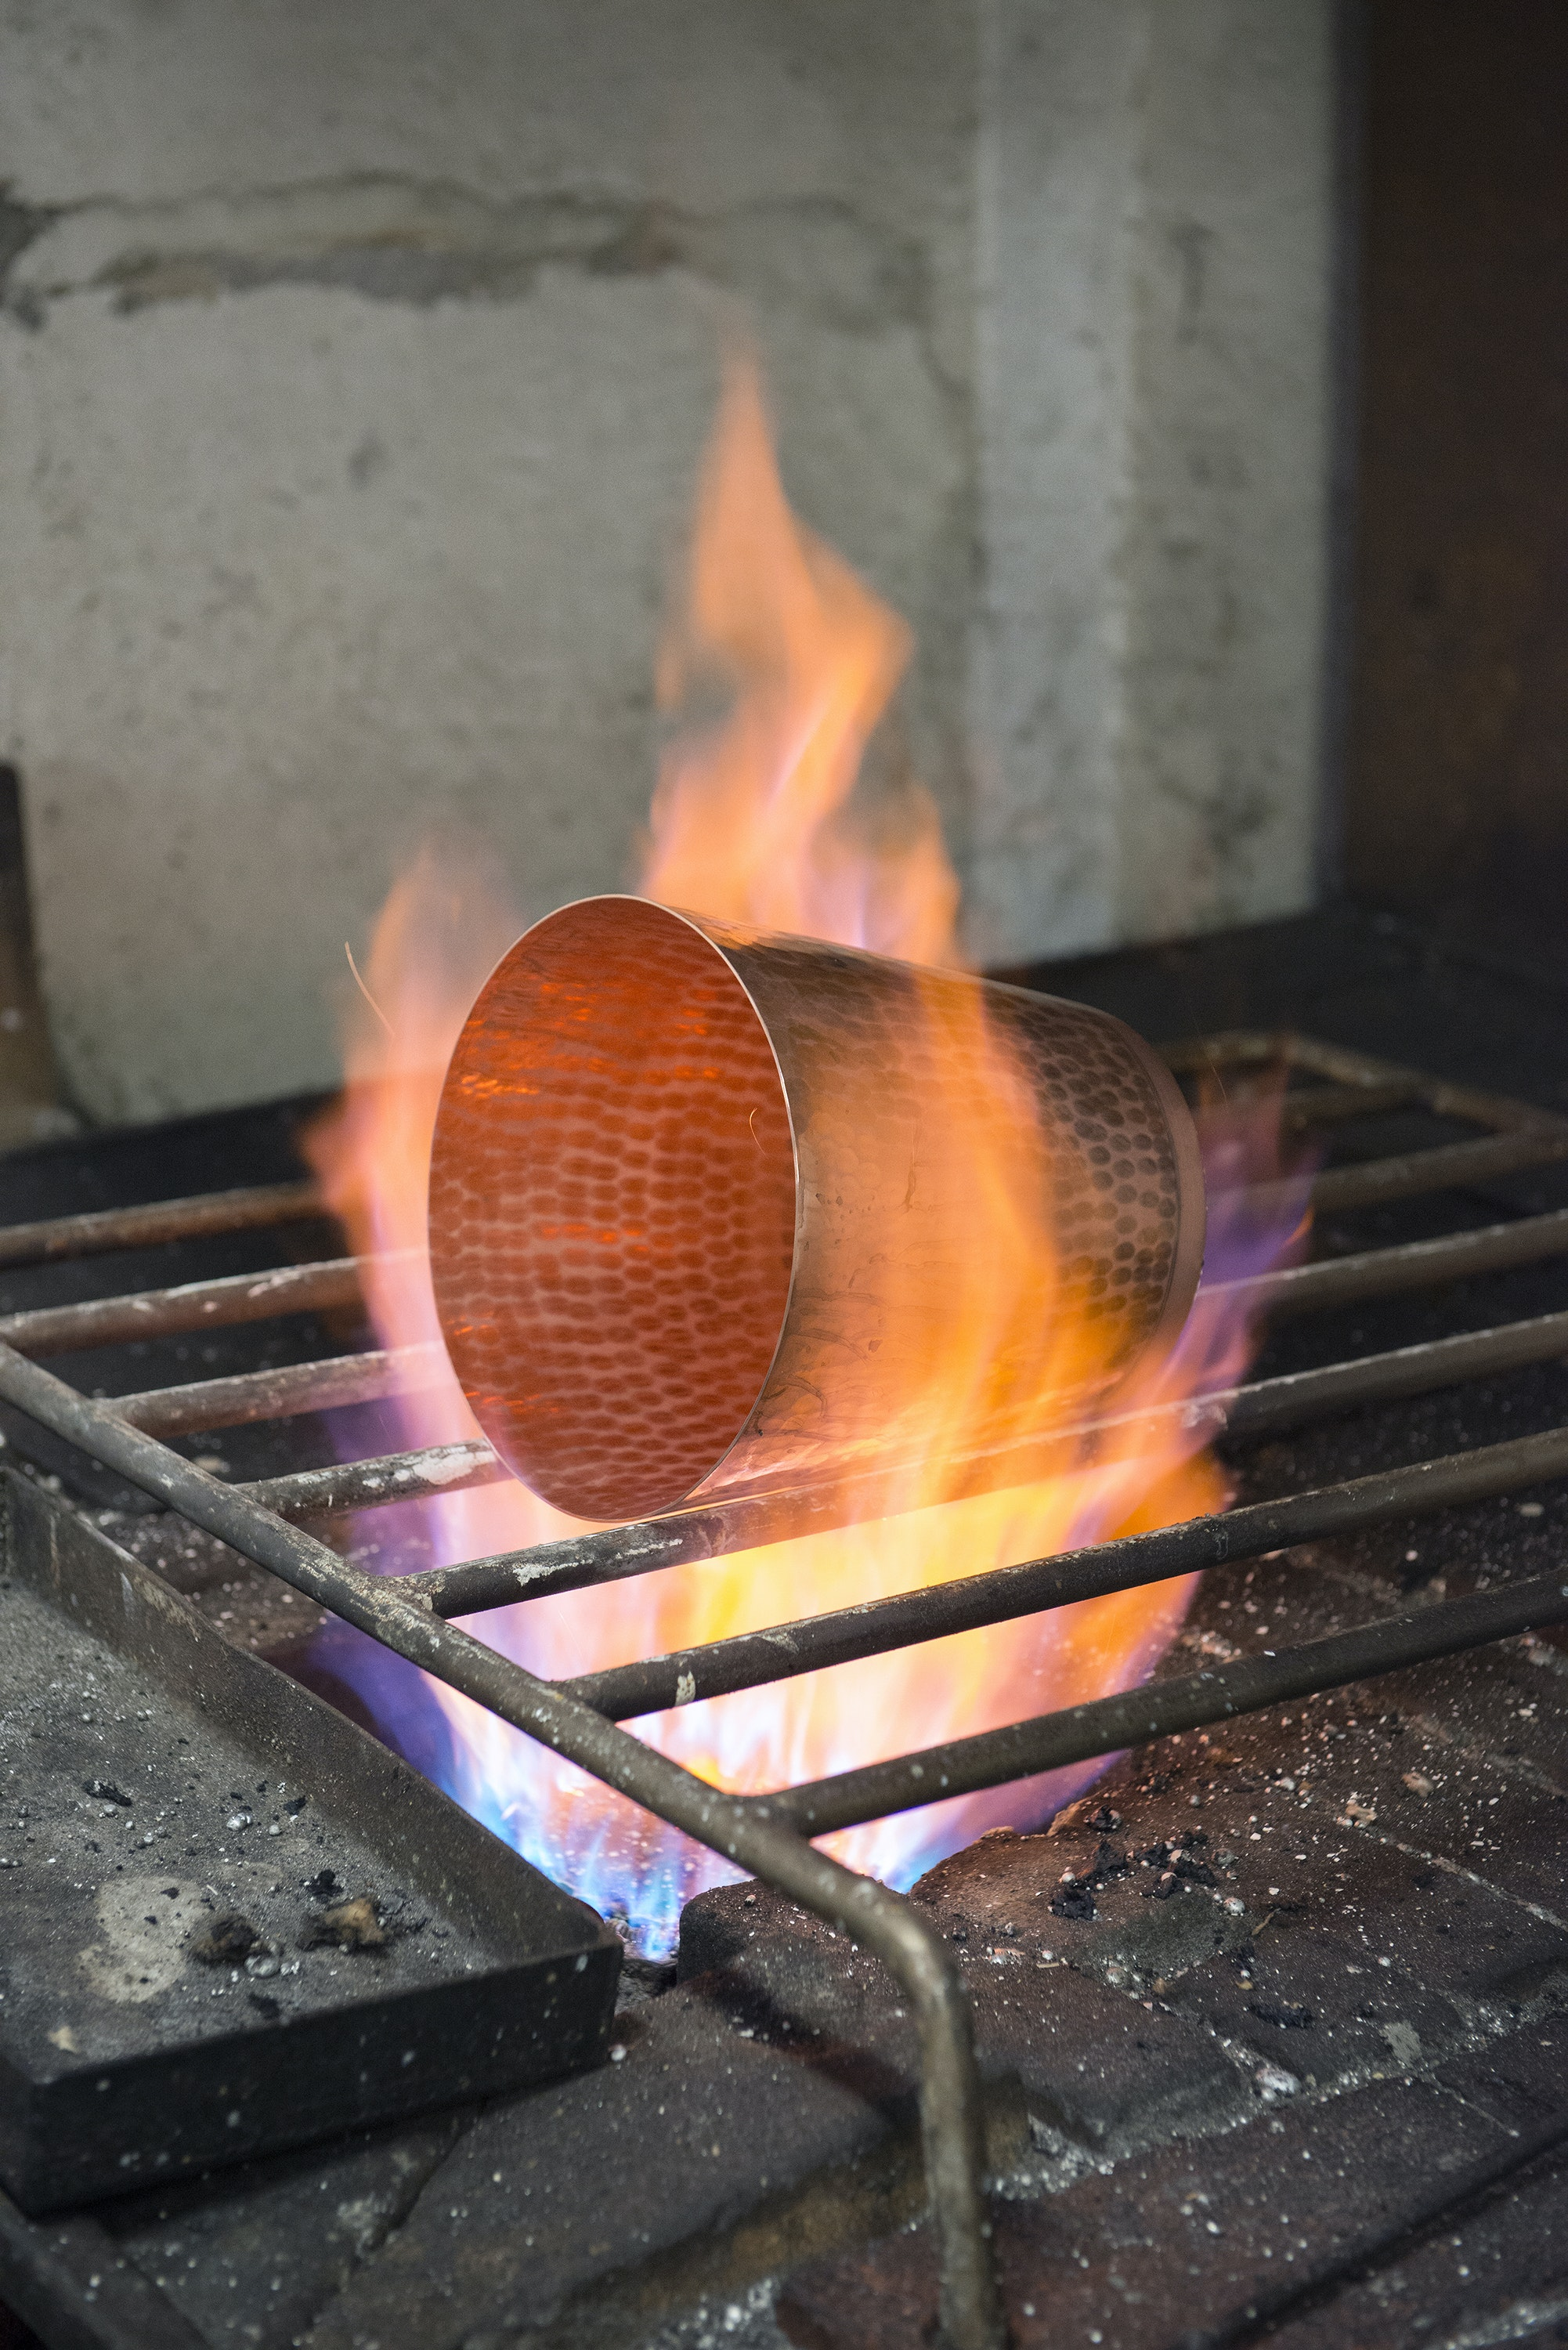 Creating Mauviel cookware is a fiery process.